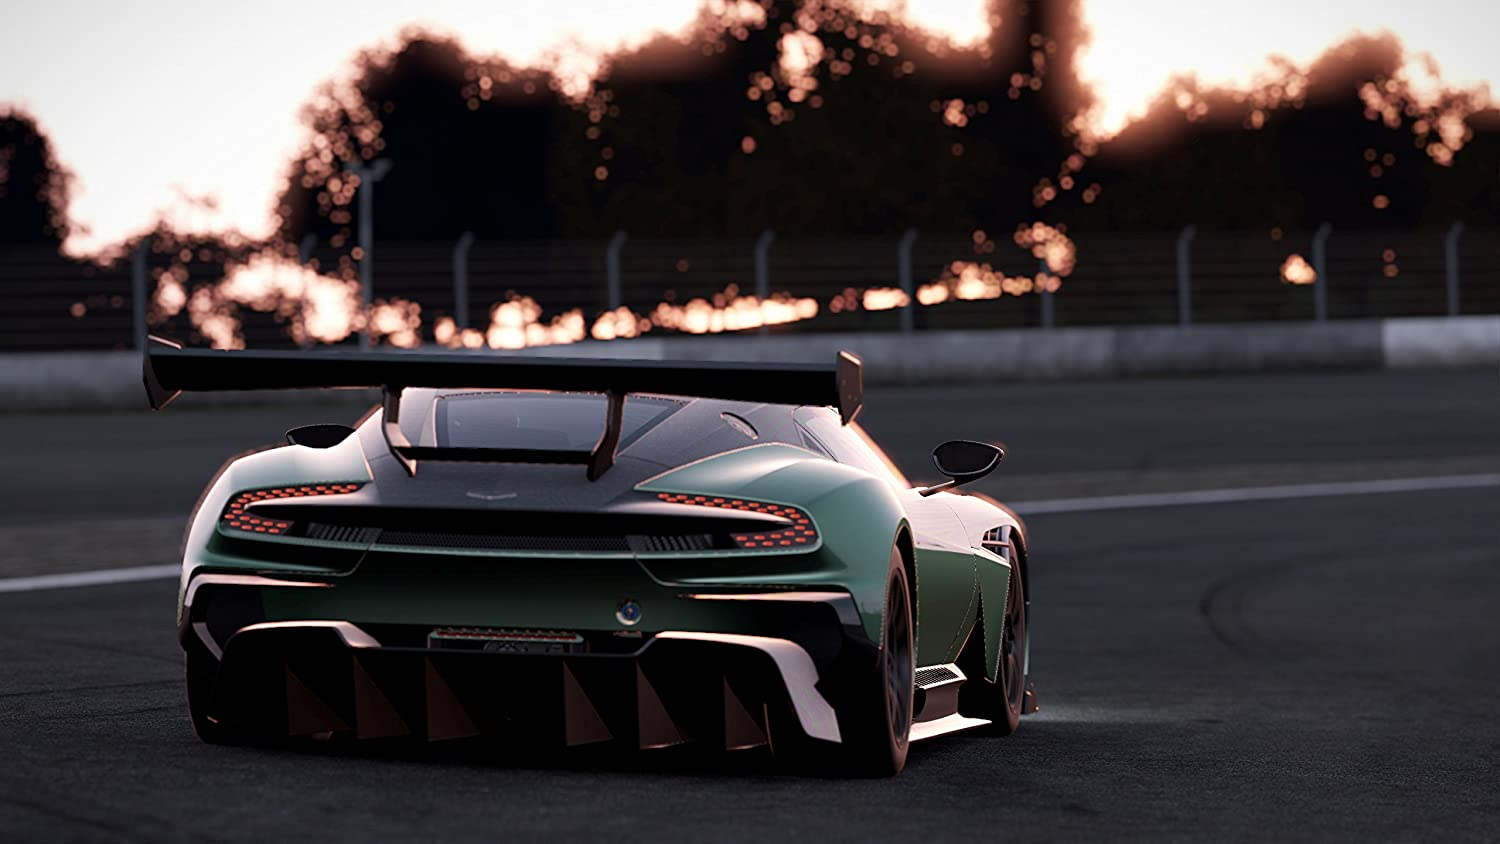 Amazon.com: Project CARS 2 - PlayStation 4 [PlayStation 4]: Video Games